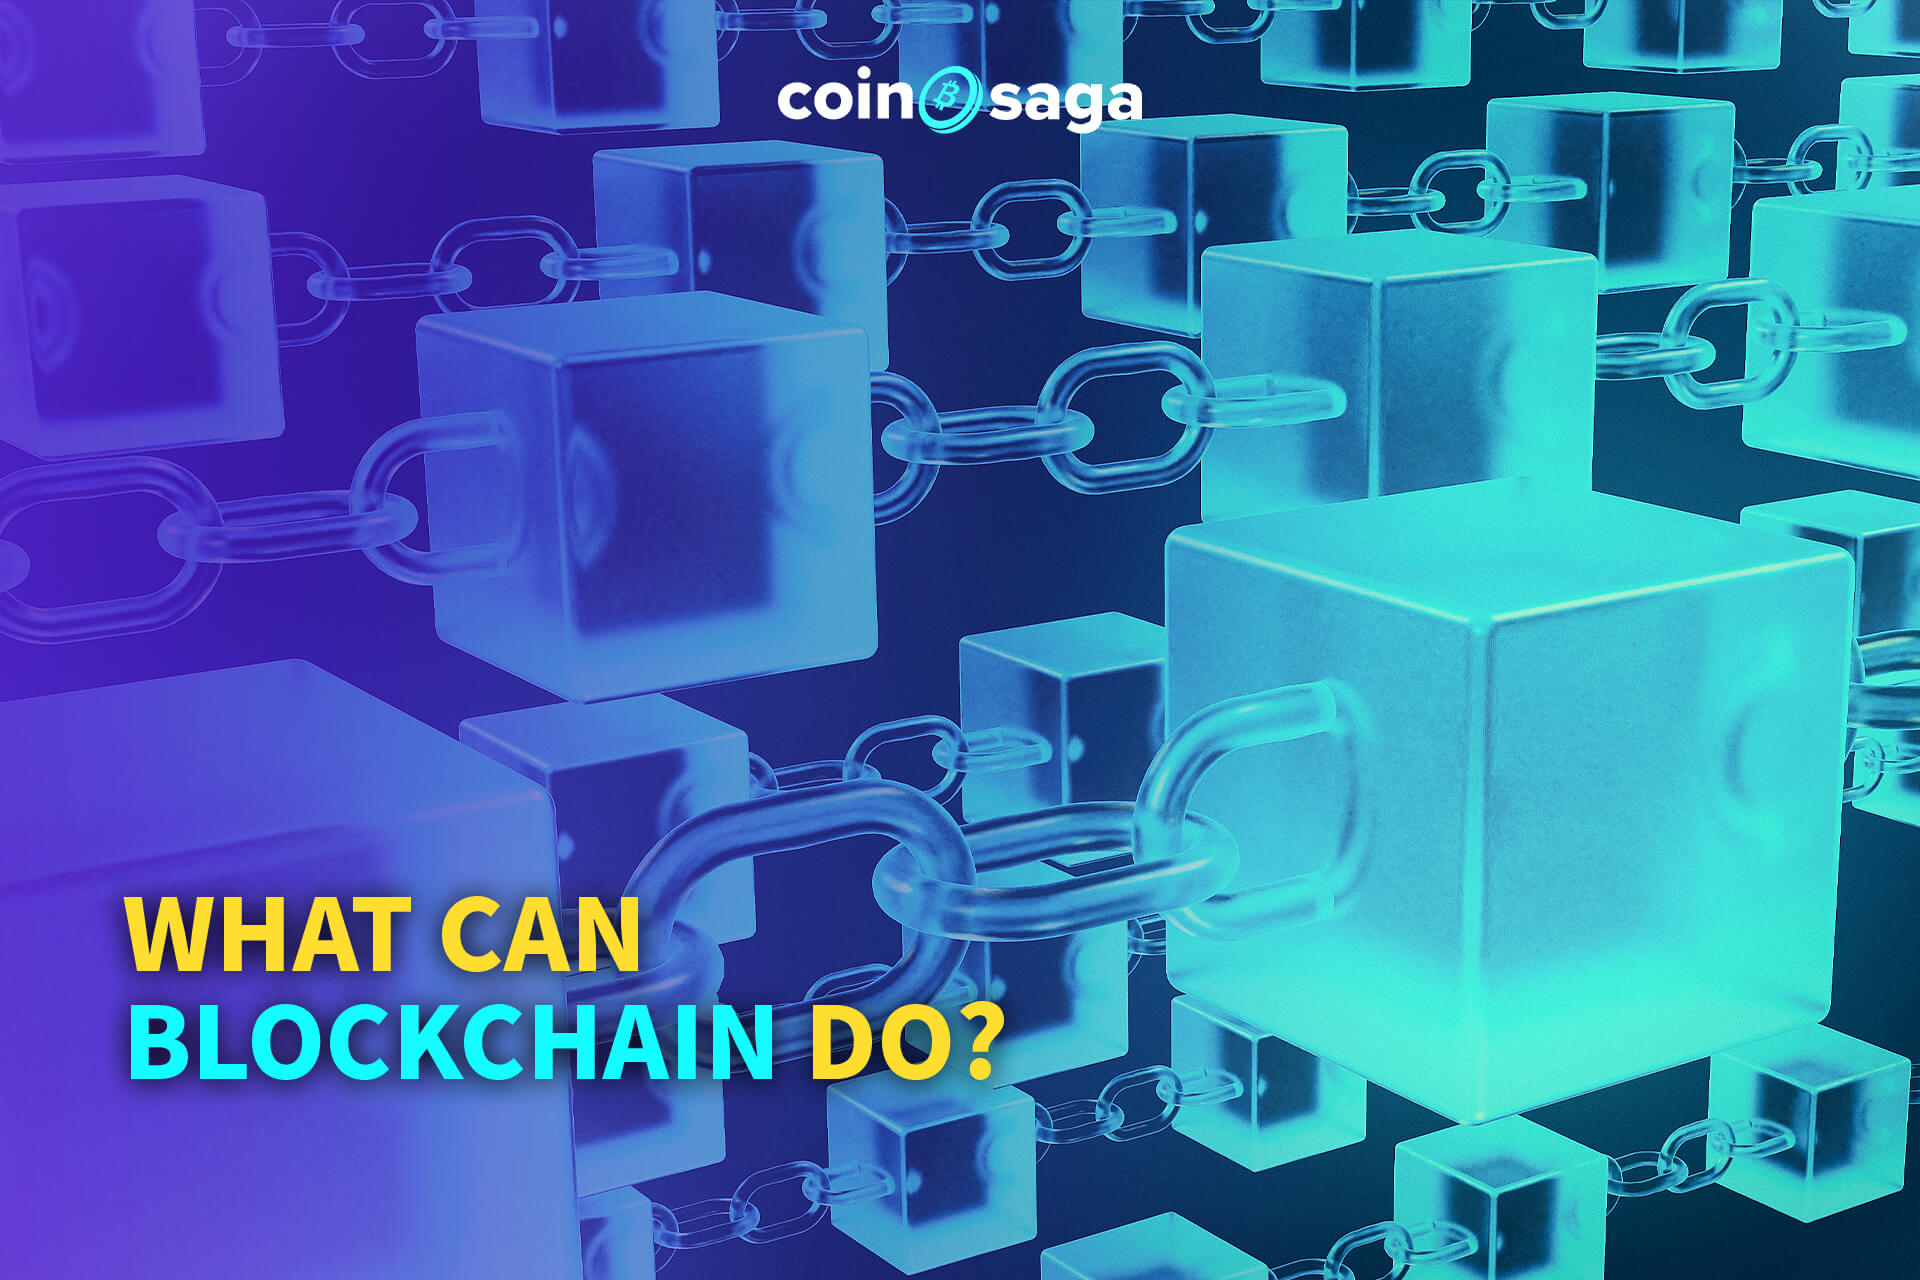 what can blockchain do?